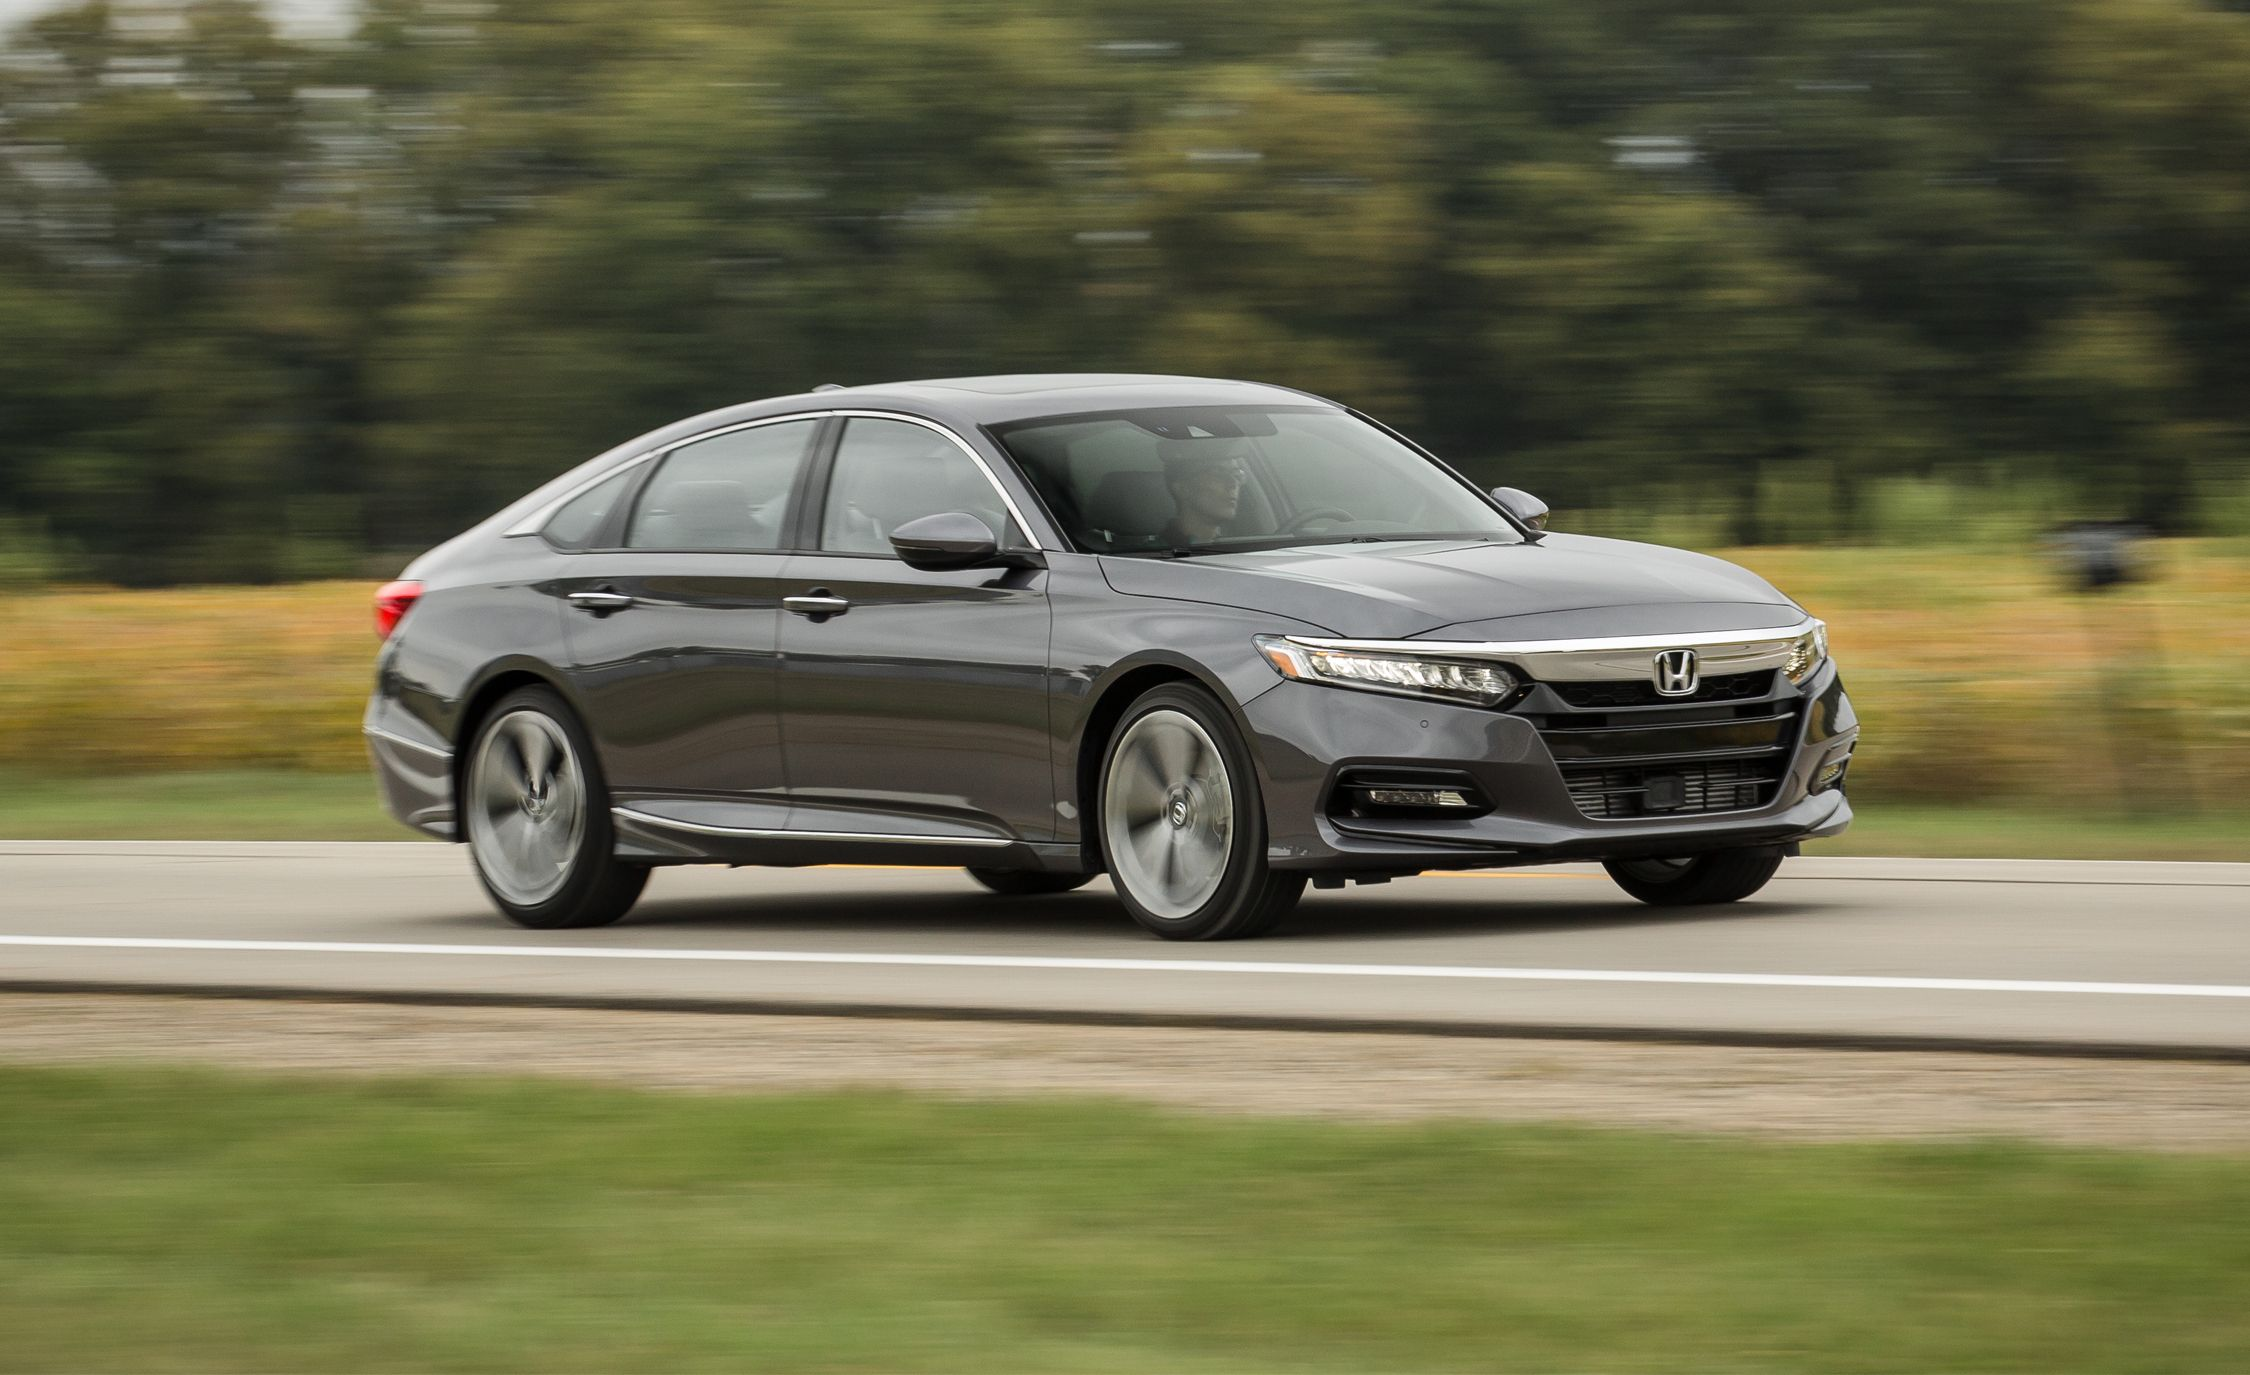 2018 Honda Accord 2.0T Automatic